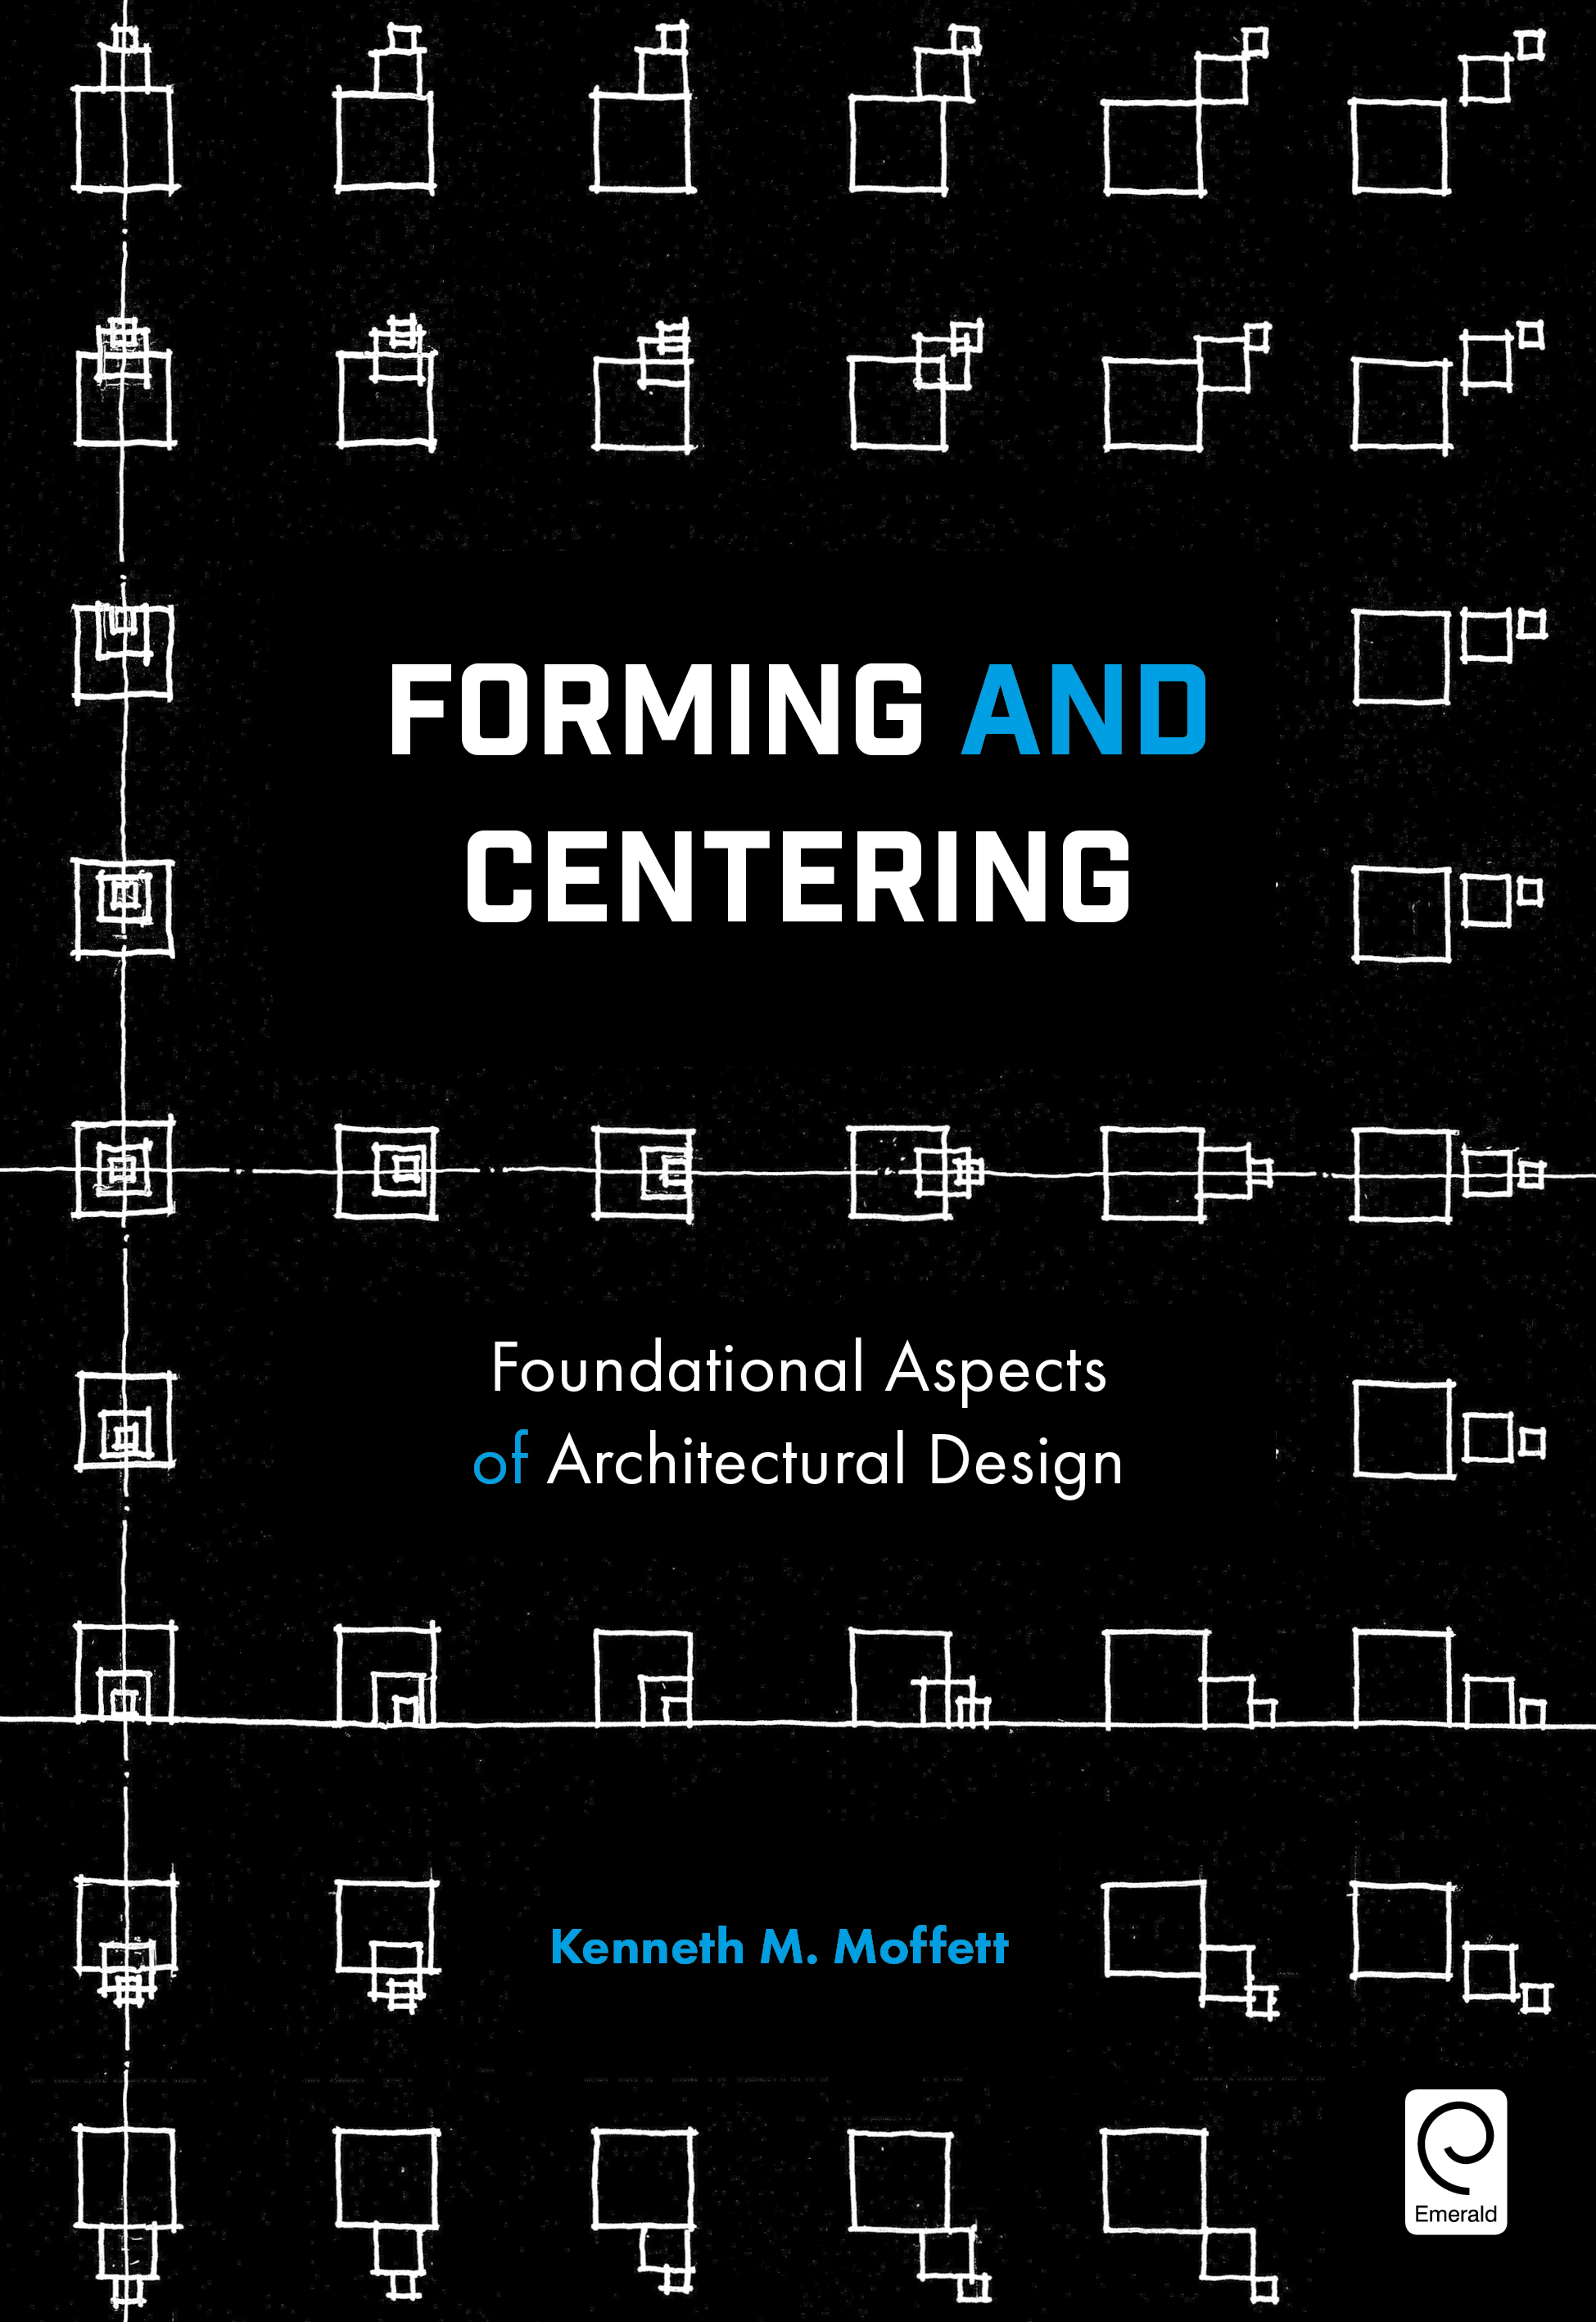 Book cover for Forming and Centering:  Foundational Aspects of Architectural Design a book by Kenneth M. Moffett